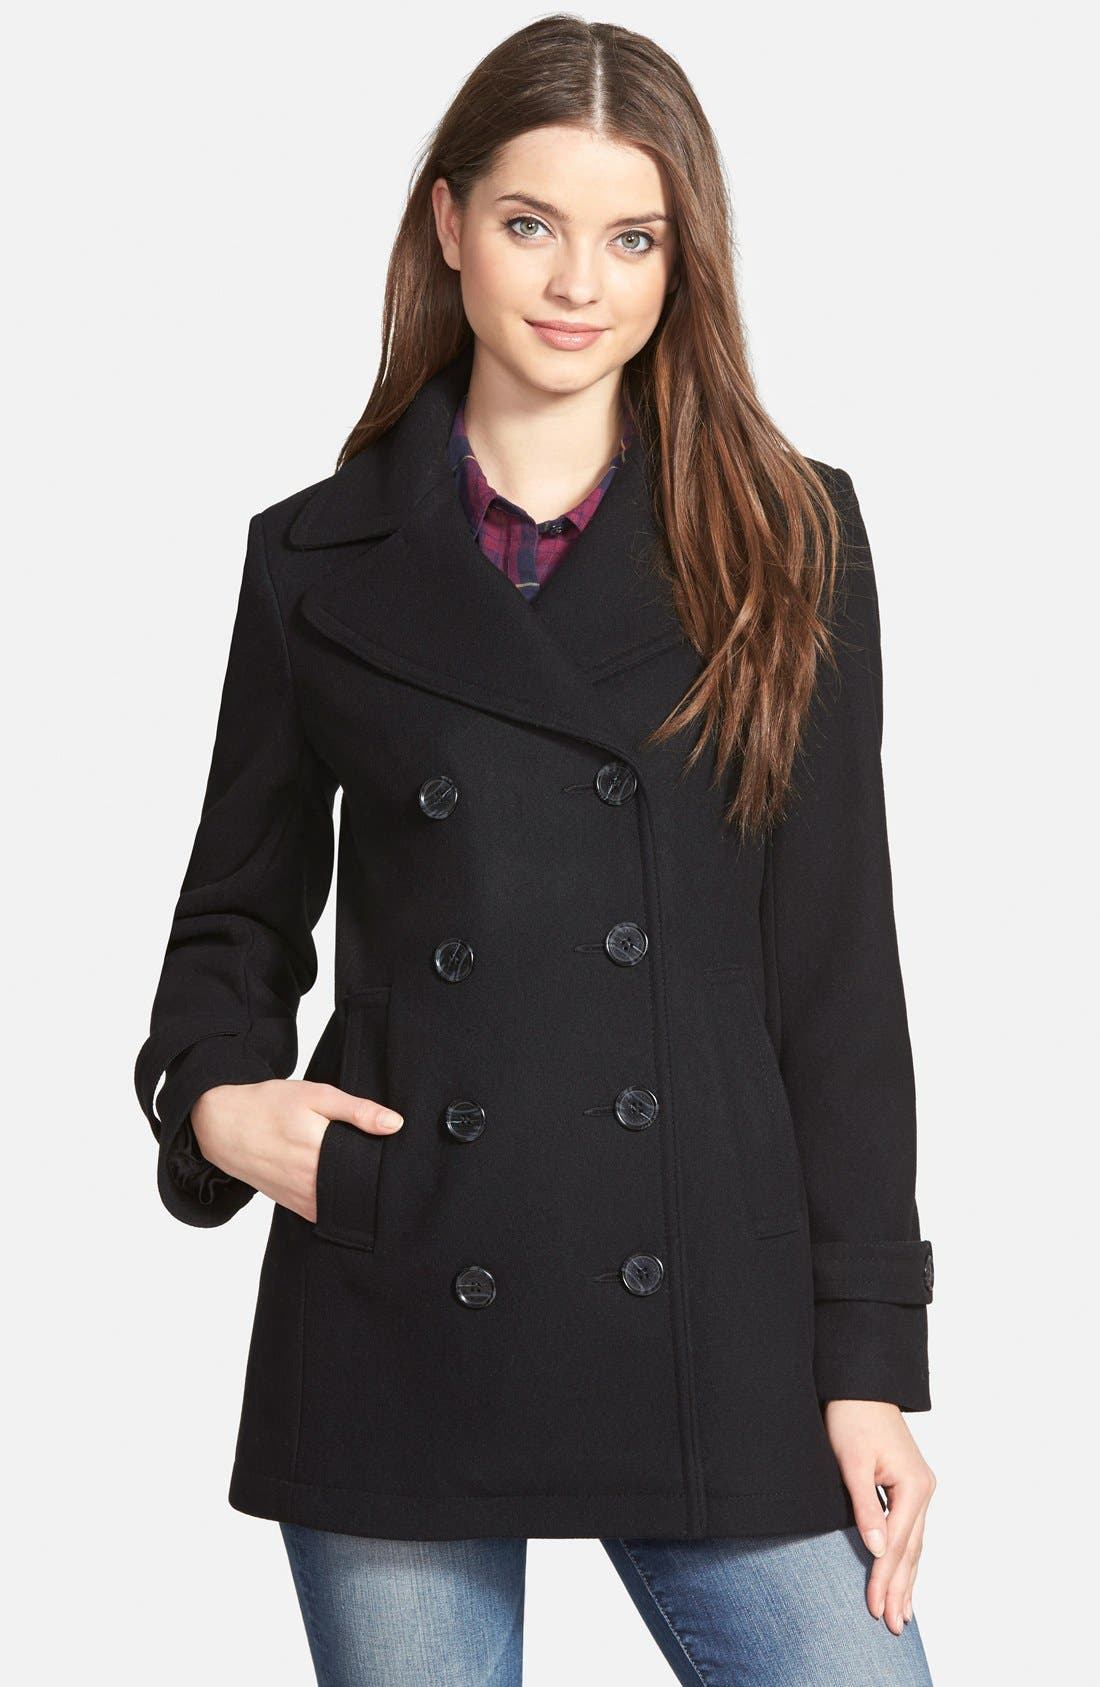 Kristen Blake Wool Blend Peacoat (Regular & Petite)